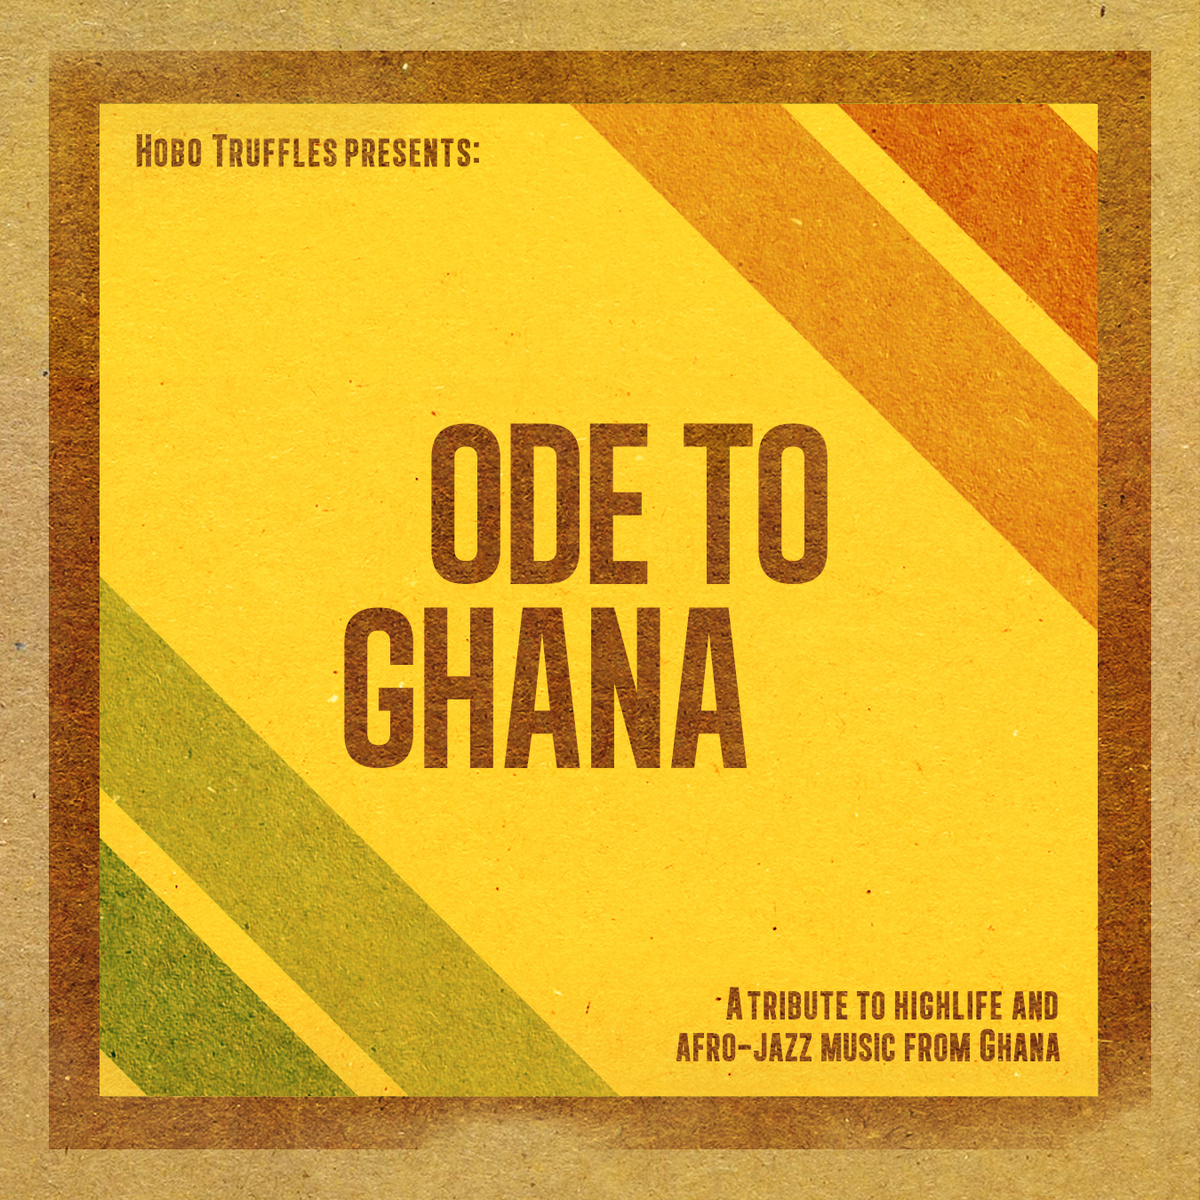 Free Download: Hobo Truffles Presents – Ode To Ghana